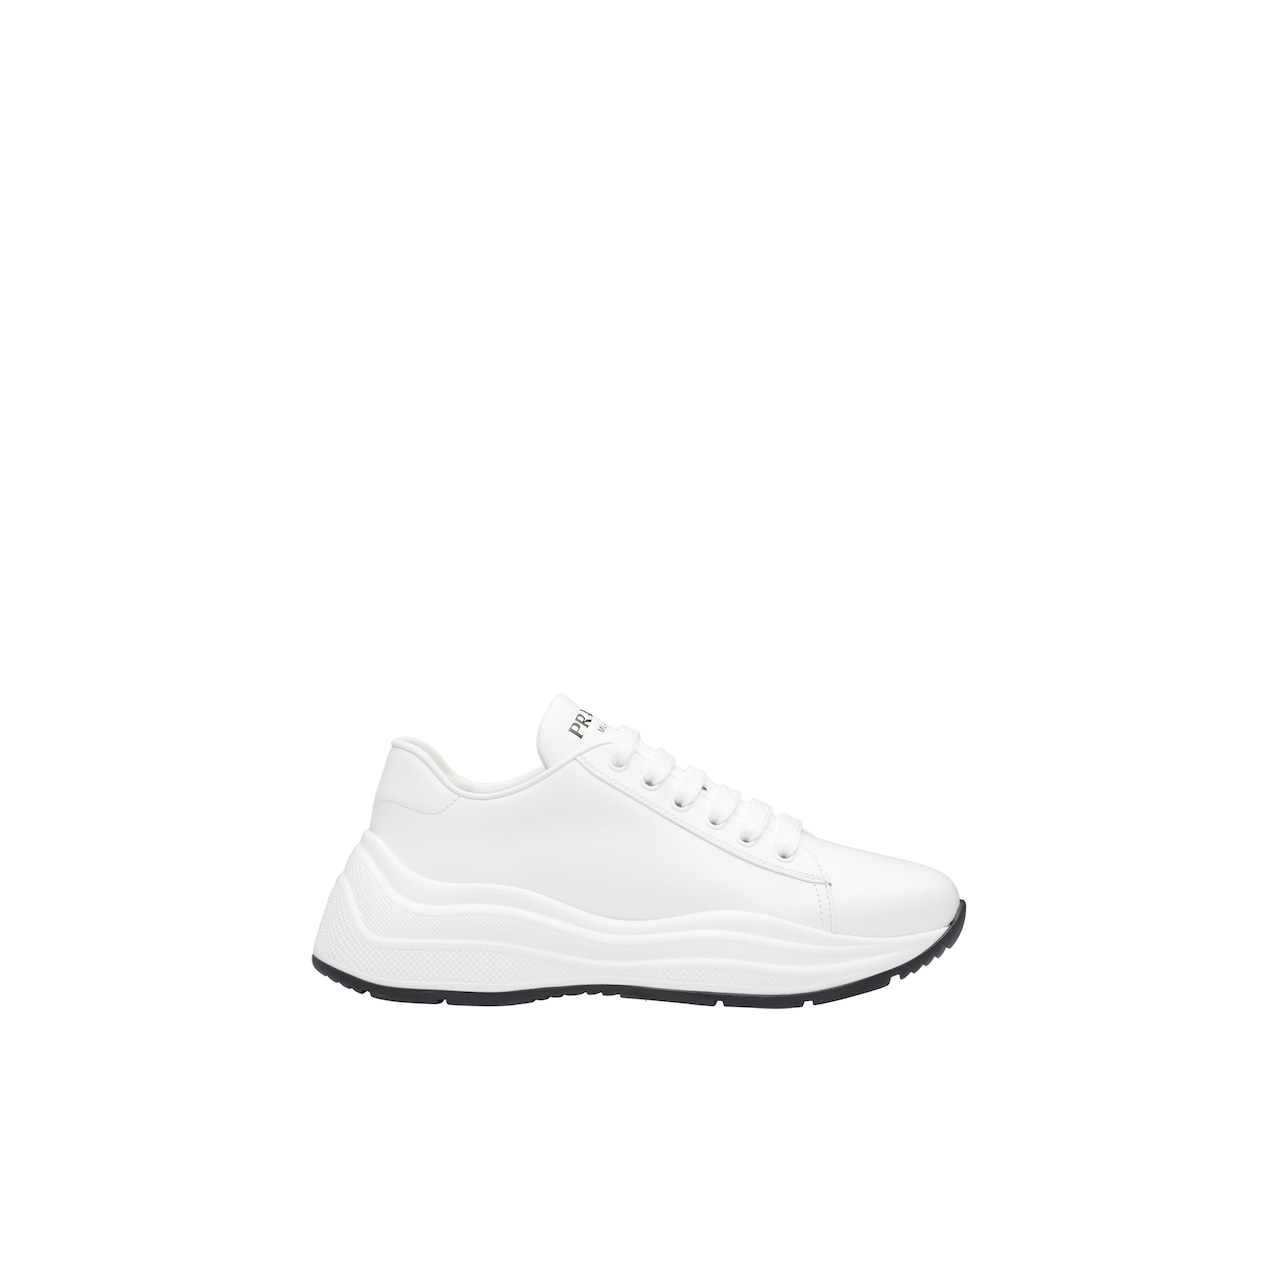 Prada Brushed leather sneakers 1